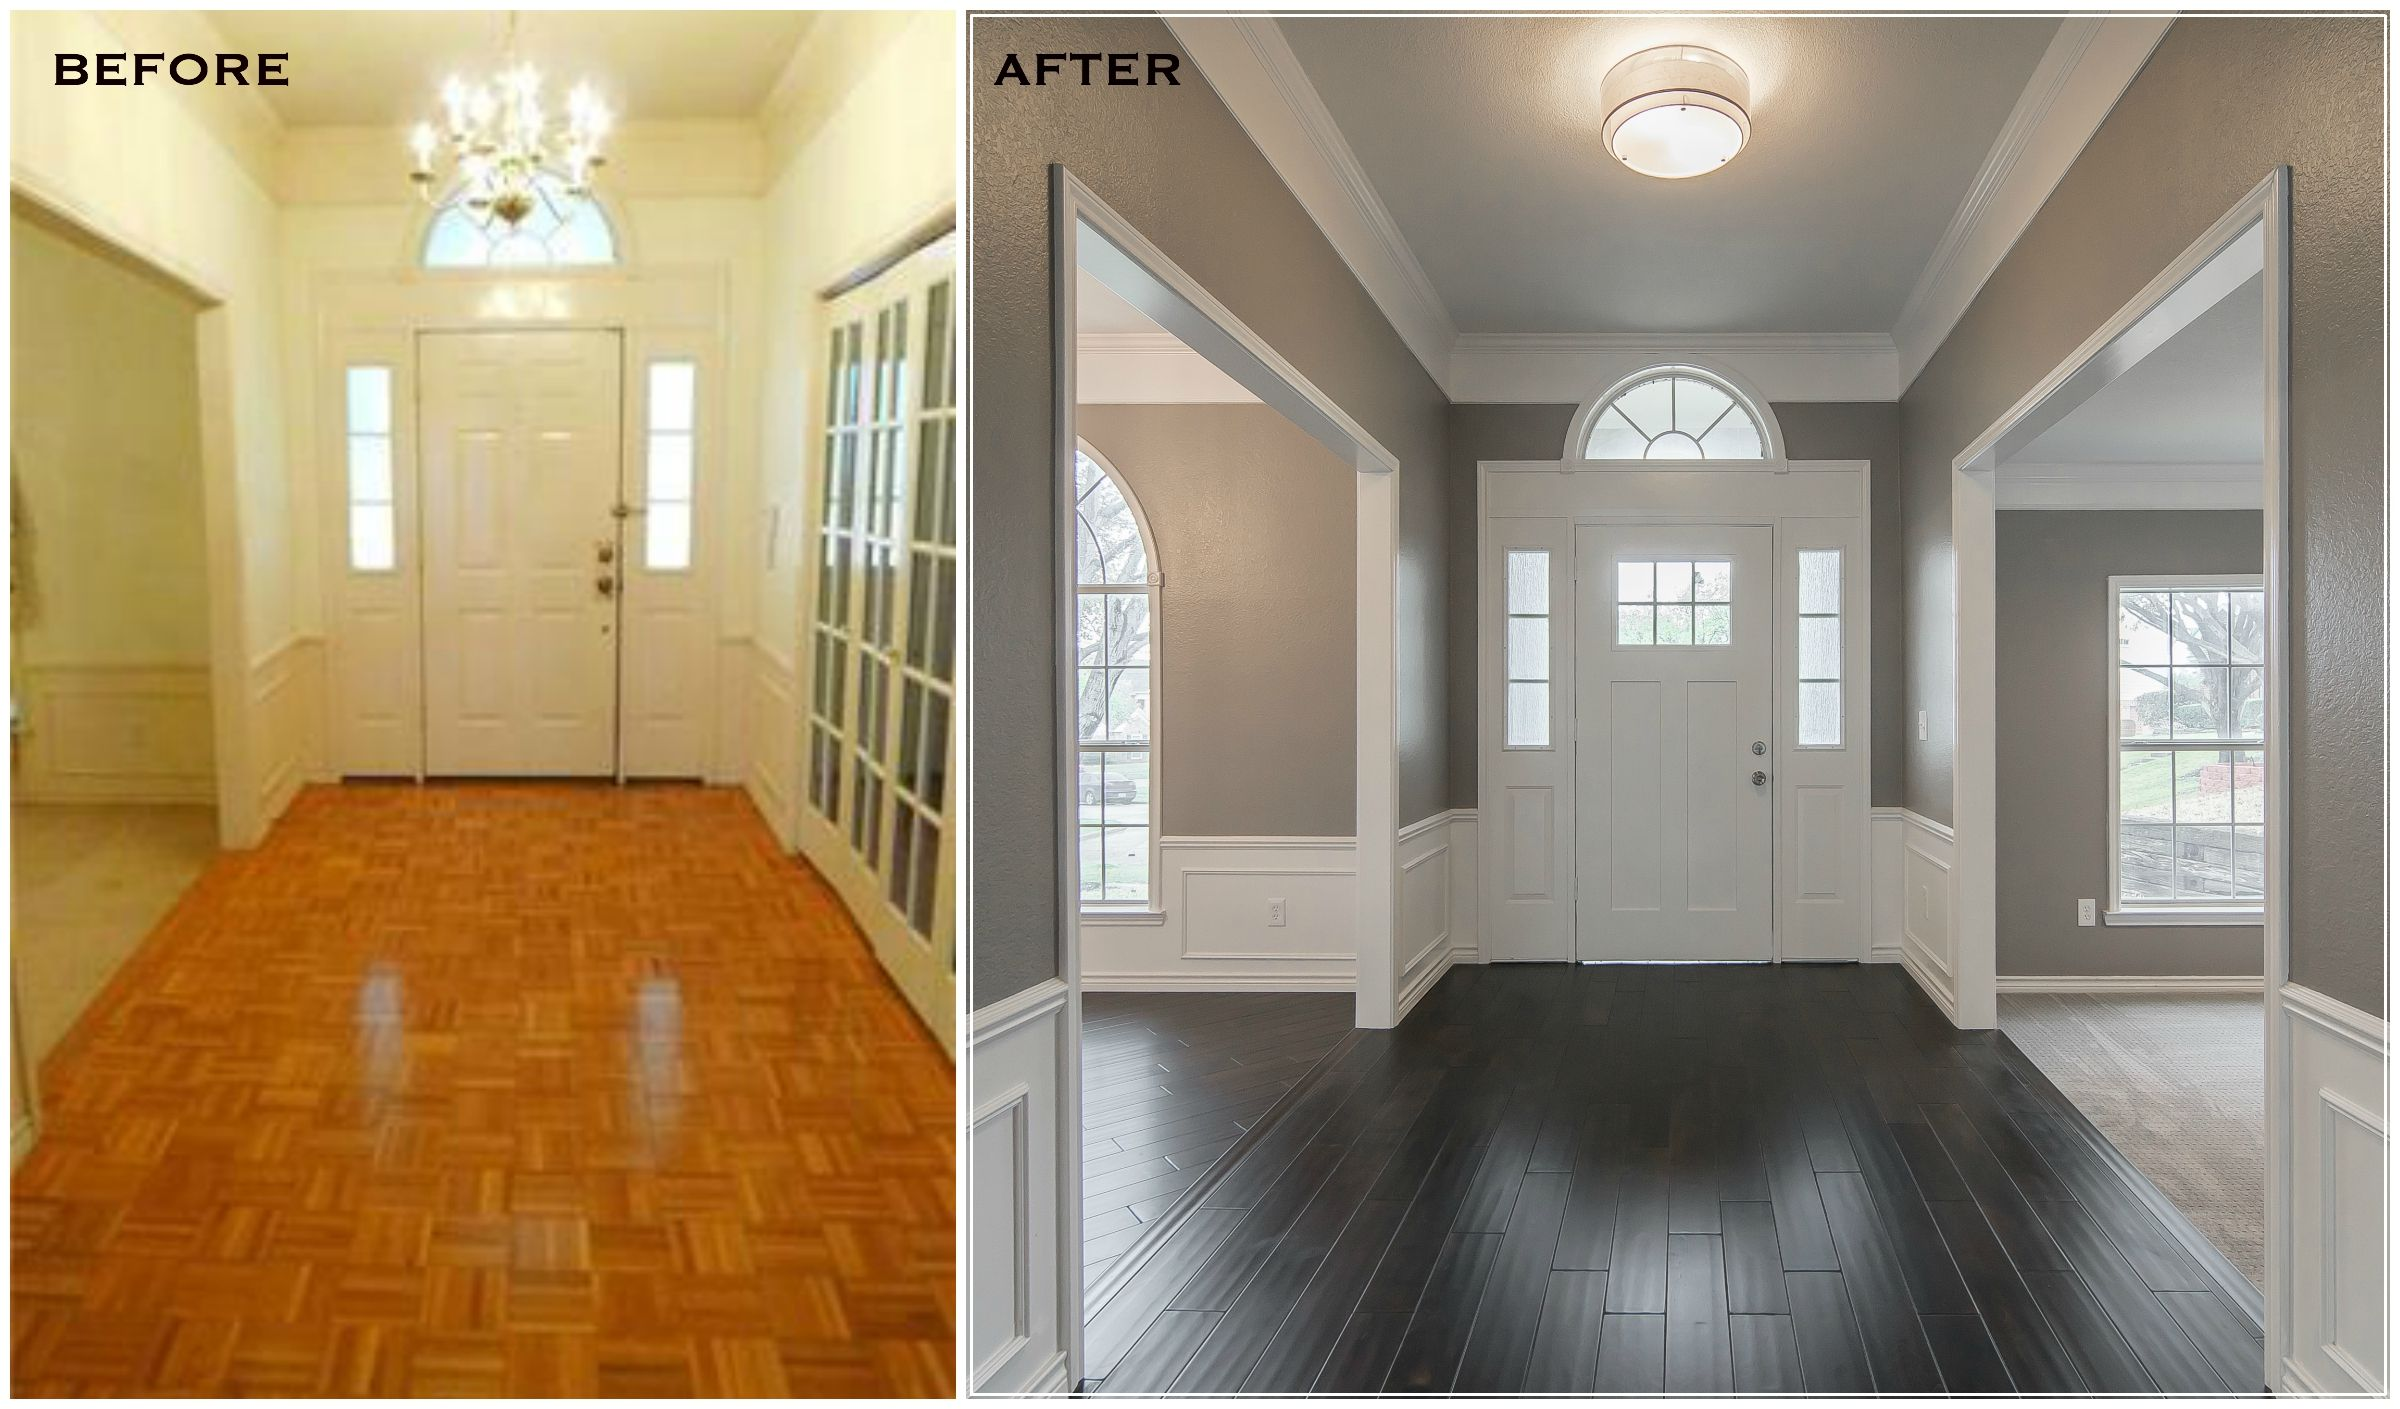 Modern Chair Rail White Covers With Royal Blue Sashes Entry Remodel Renovation Make Over Dark Wood Floors